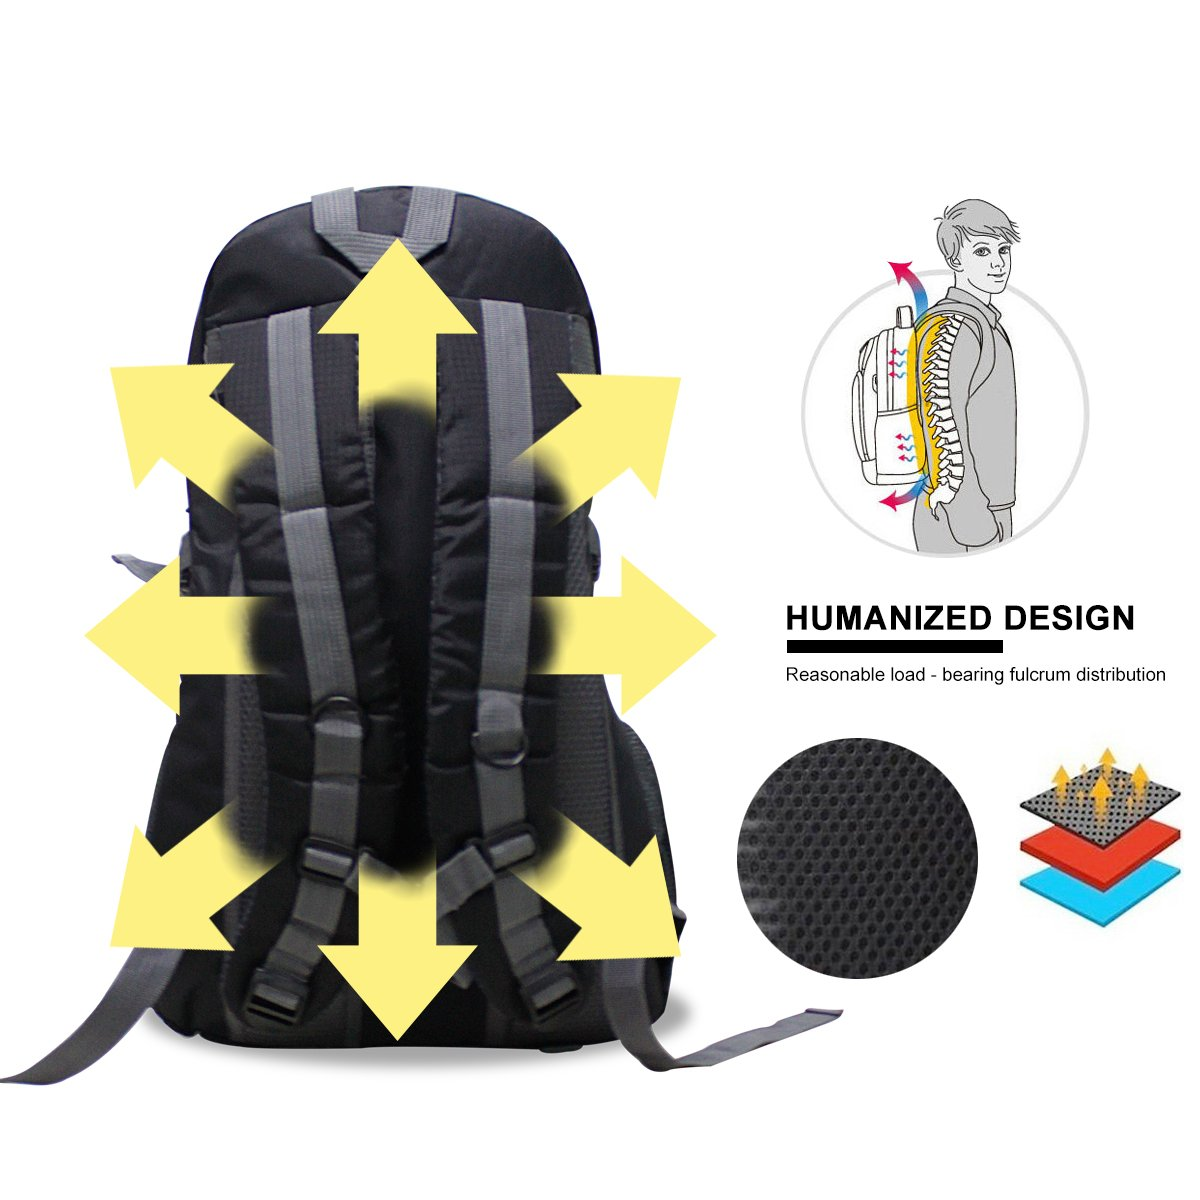 Baishiqi 40L Lightweight Hiking Backpack, Multi-functional Water-resistant  Casual Camping Trekking Rucksack for Cycling Travel Climbing Mountaineer